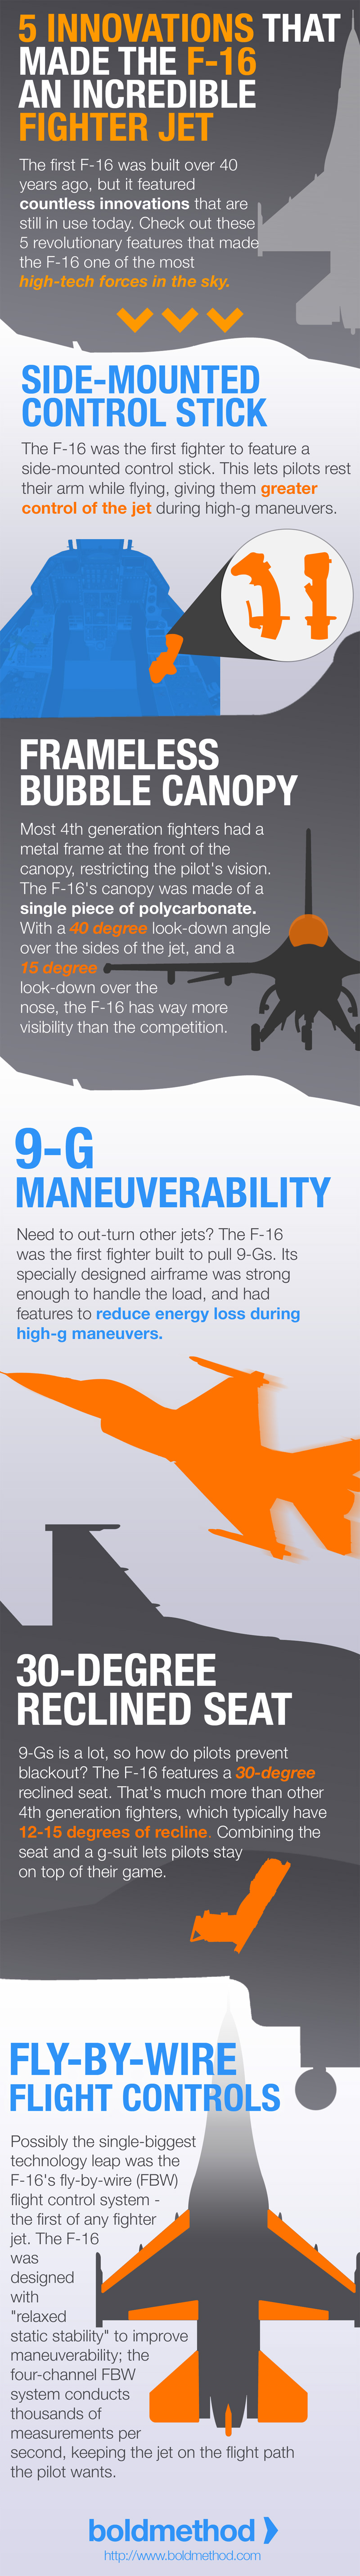 F-16 Infographic - Mobile